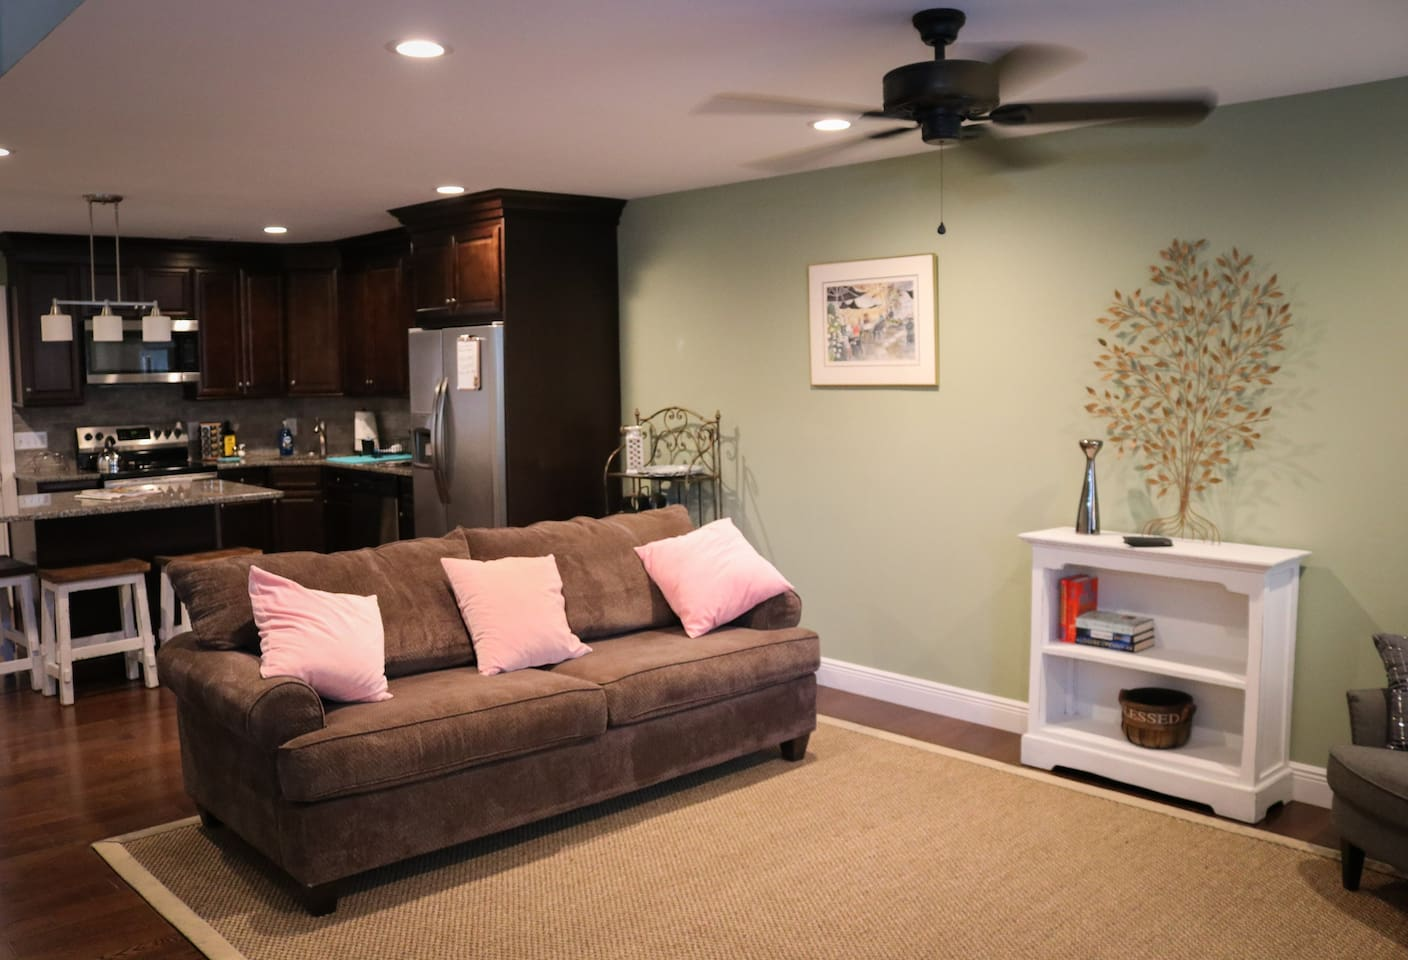 Ample space for cooking, dining, and entertaining! Can lighting and ceiling fans can found throughout the home.